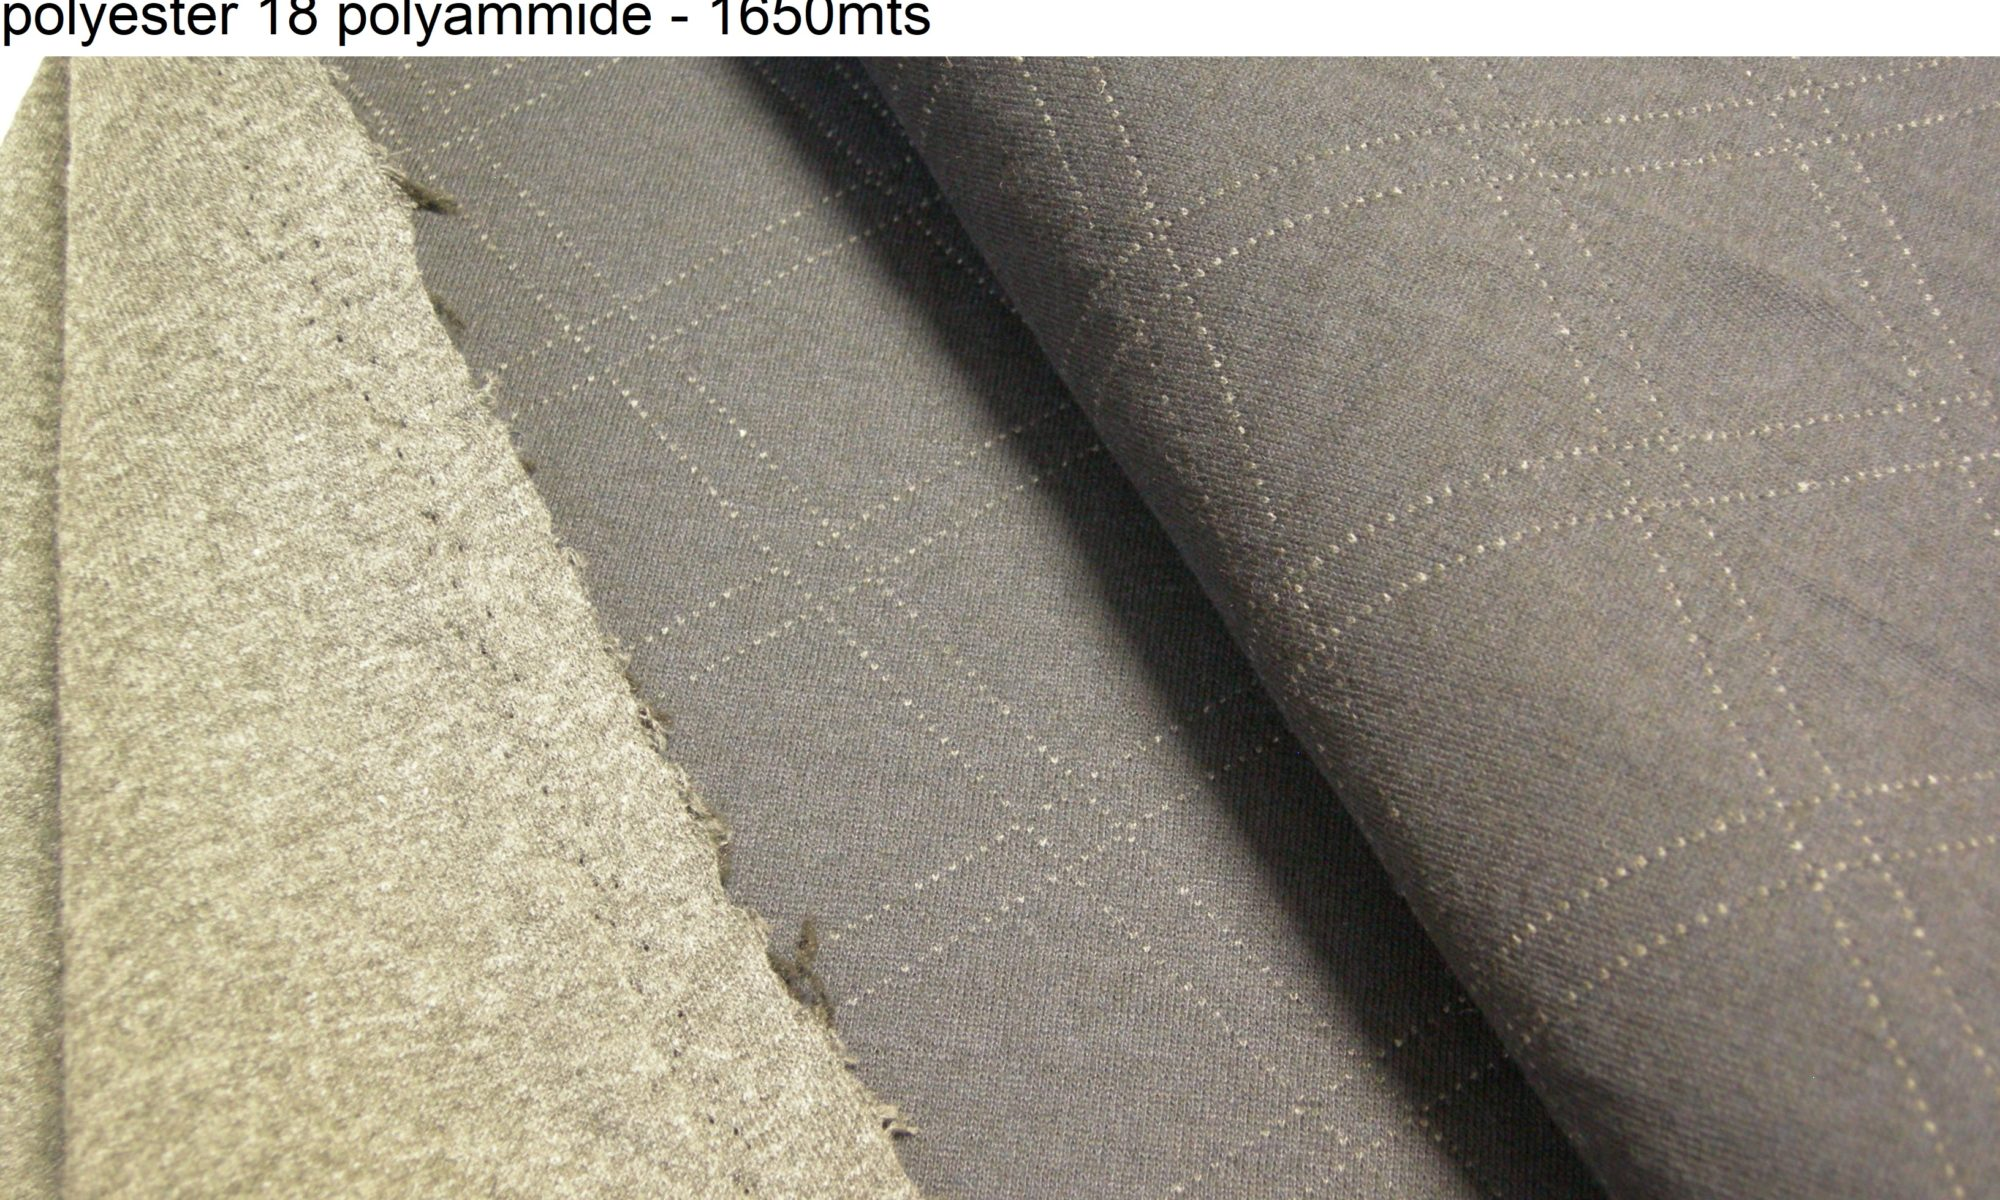 ART 7418 double faced knit jersey jacket coat fabric WIDTH cm130 WEIGHT gr510 - gr392 square meter - COMPOSITION 41 cotton 41 polyester 18 polyammide - 1650mts